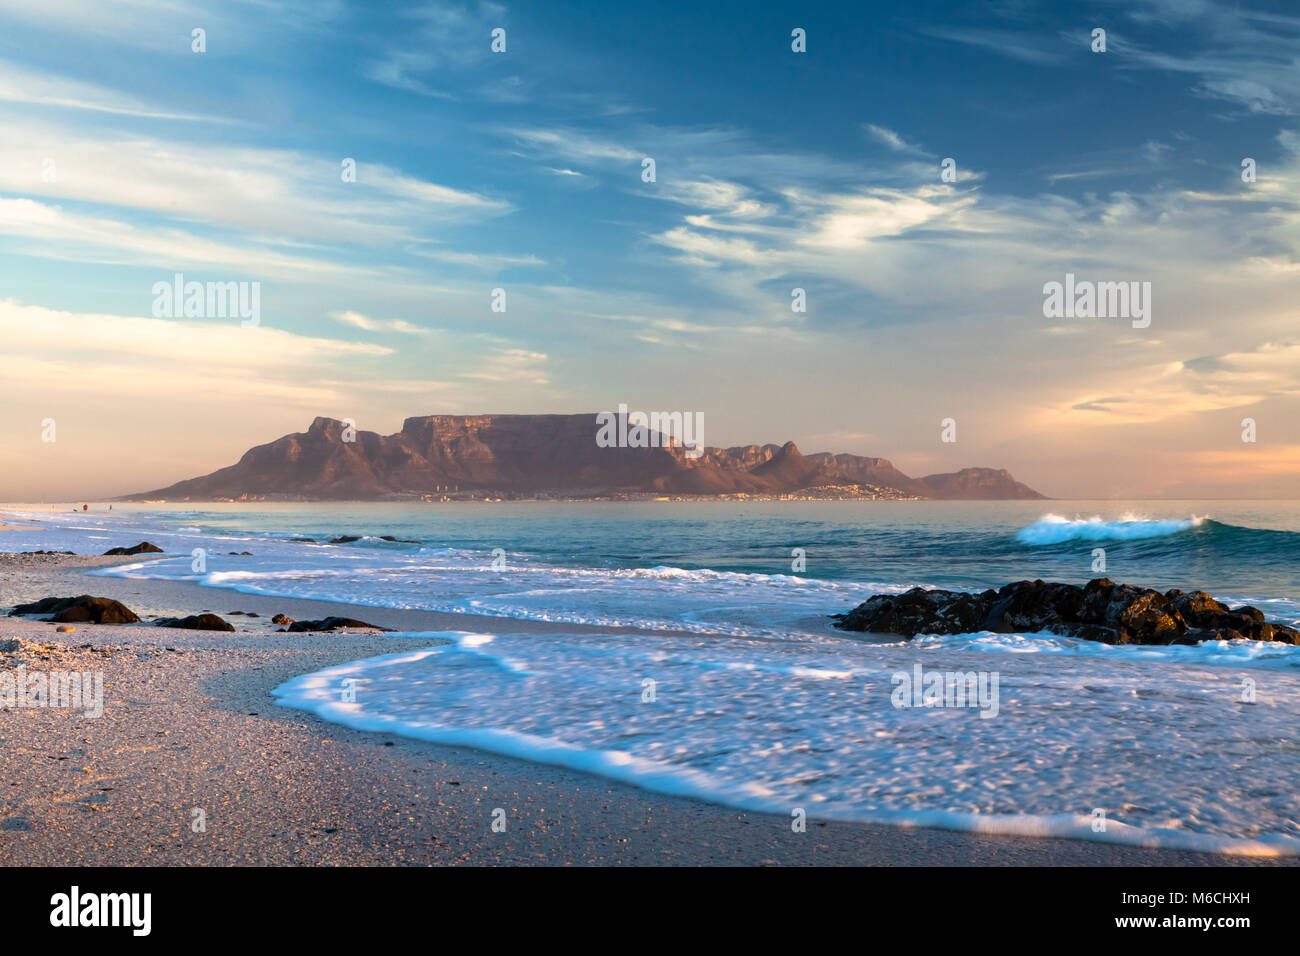 scenic view of table mountain cape town south africa from blouberg - Stock Image